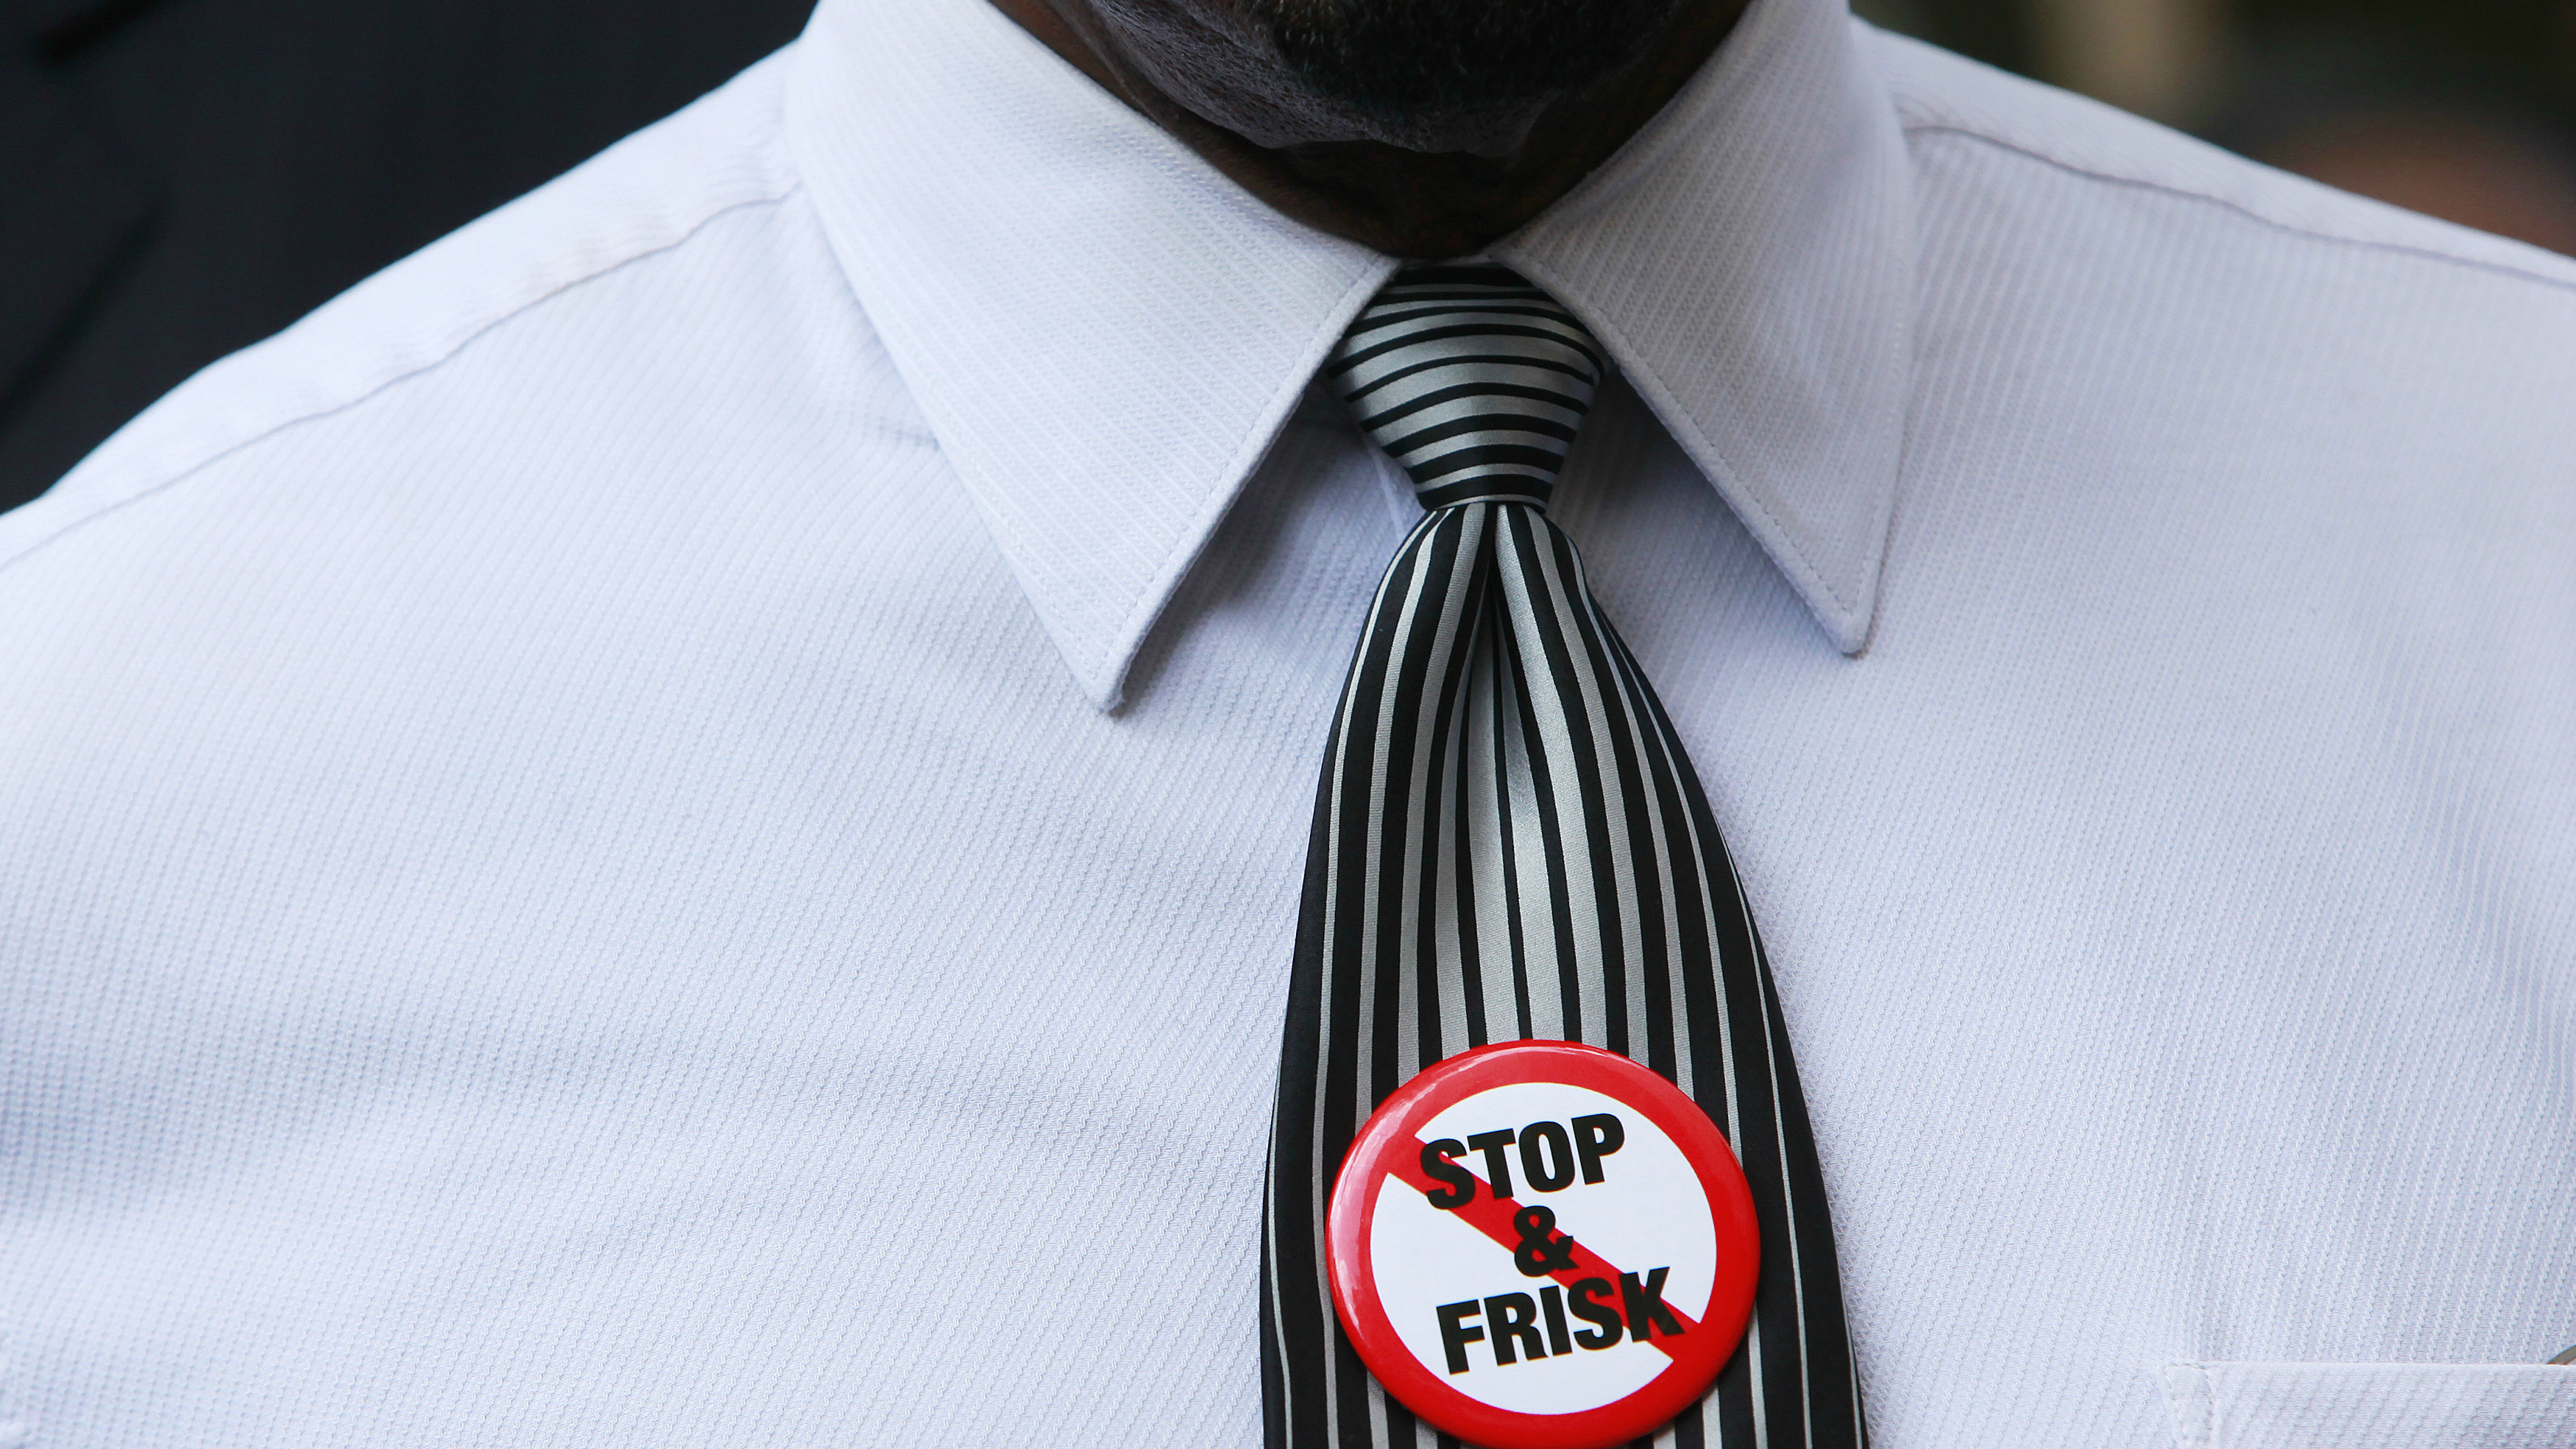 eric-thayer-reuters-stop-and-frisk